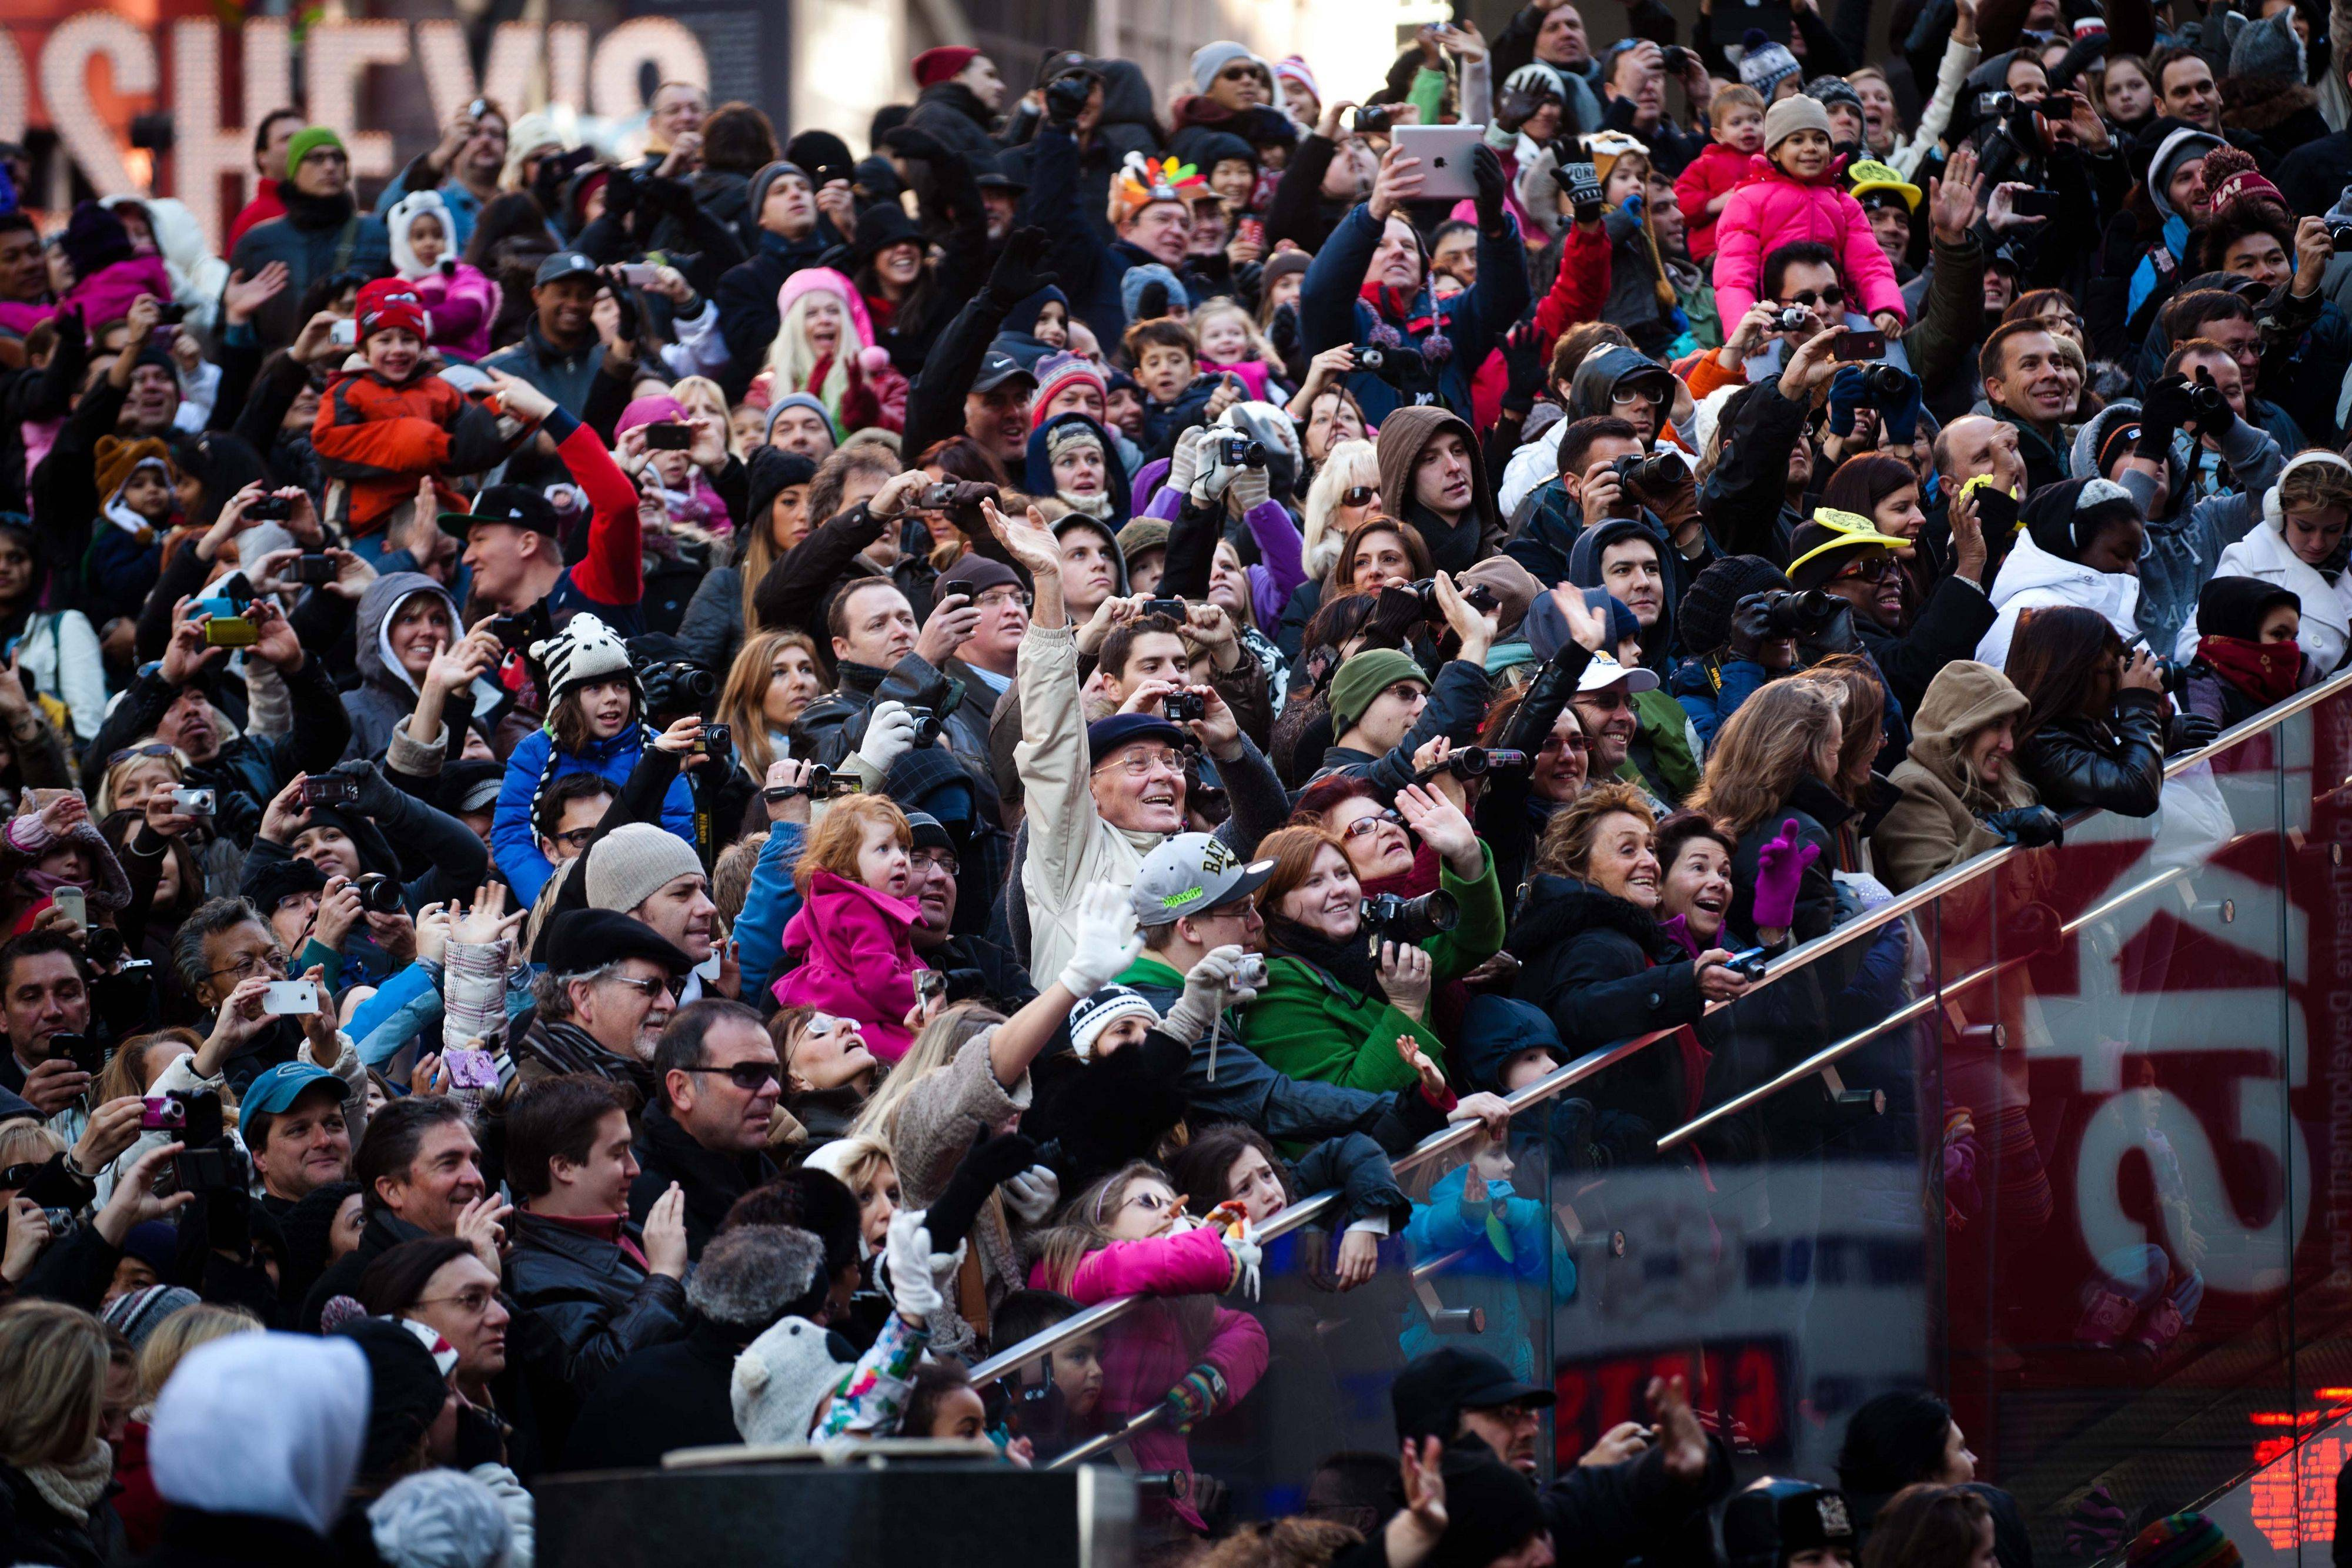 Crowds look on as the Santa Claus float makes its way through Times Square during the Macy's Thanksgiving Day Parade, Thursday, Nov. 24, 2011, in New York. A jetpack-wearing monkey and a freakish creation from filmmaker Tim Burton are two of the big new balloons that will make their inaugural appearances in front of millions of people at this year's parade.